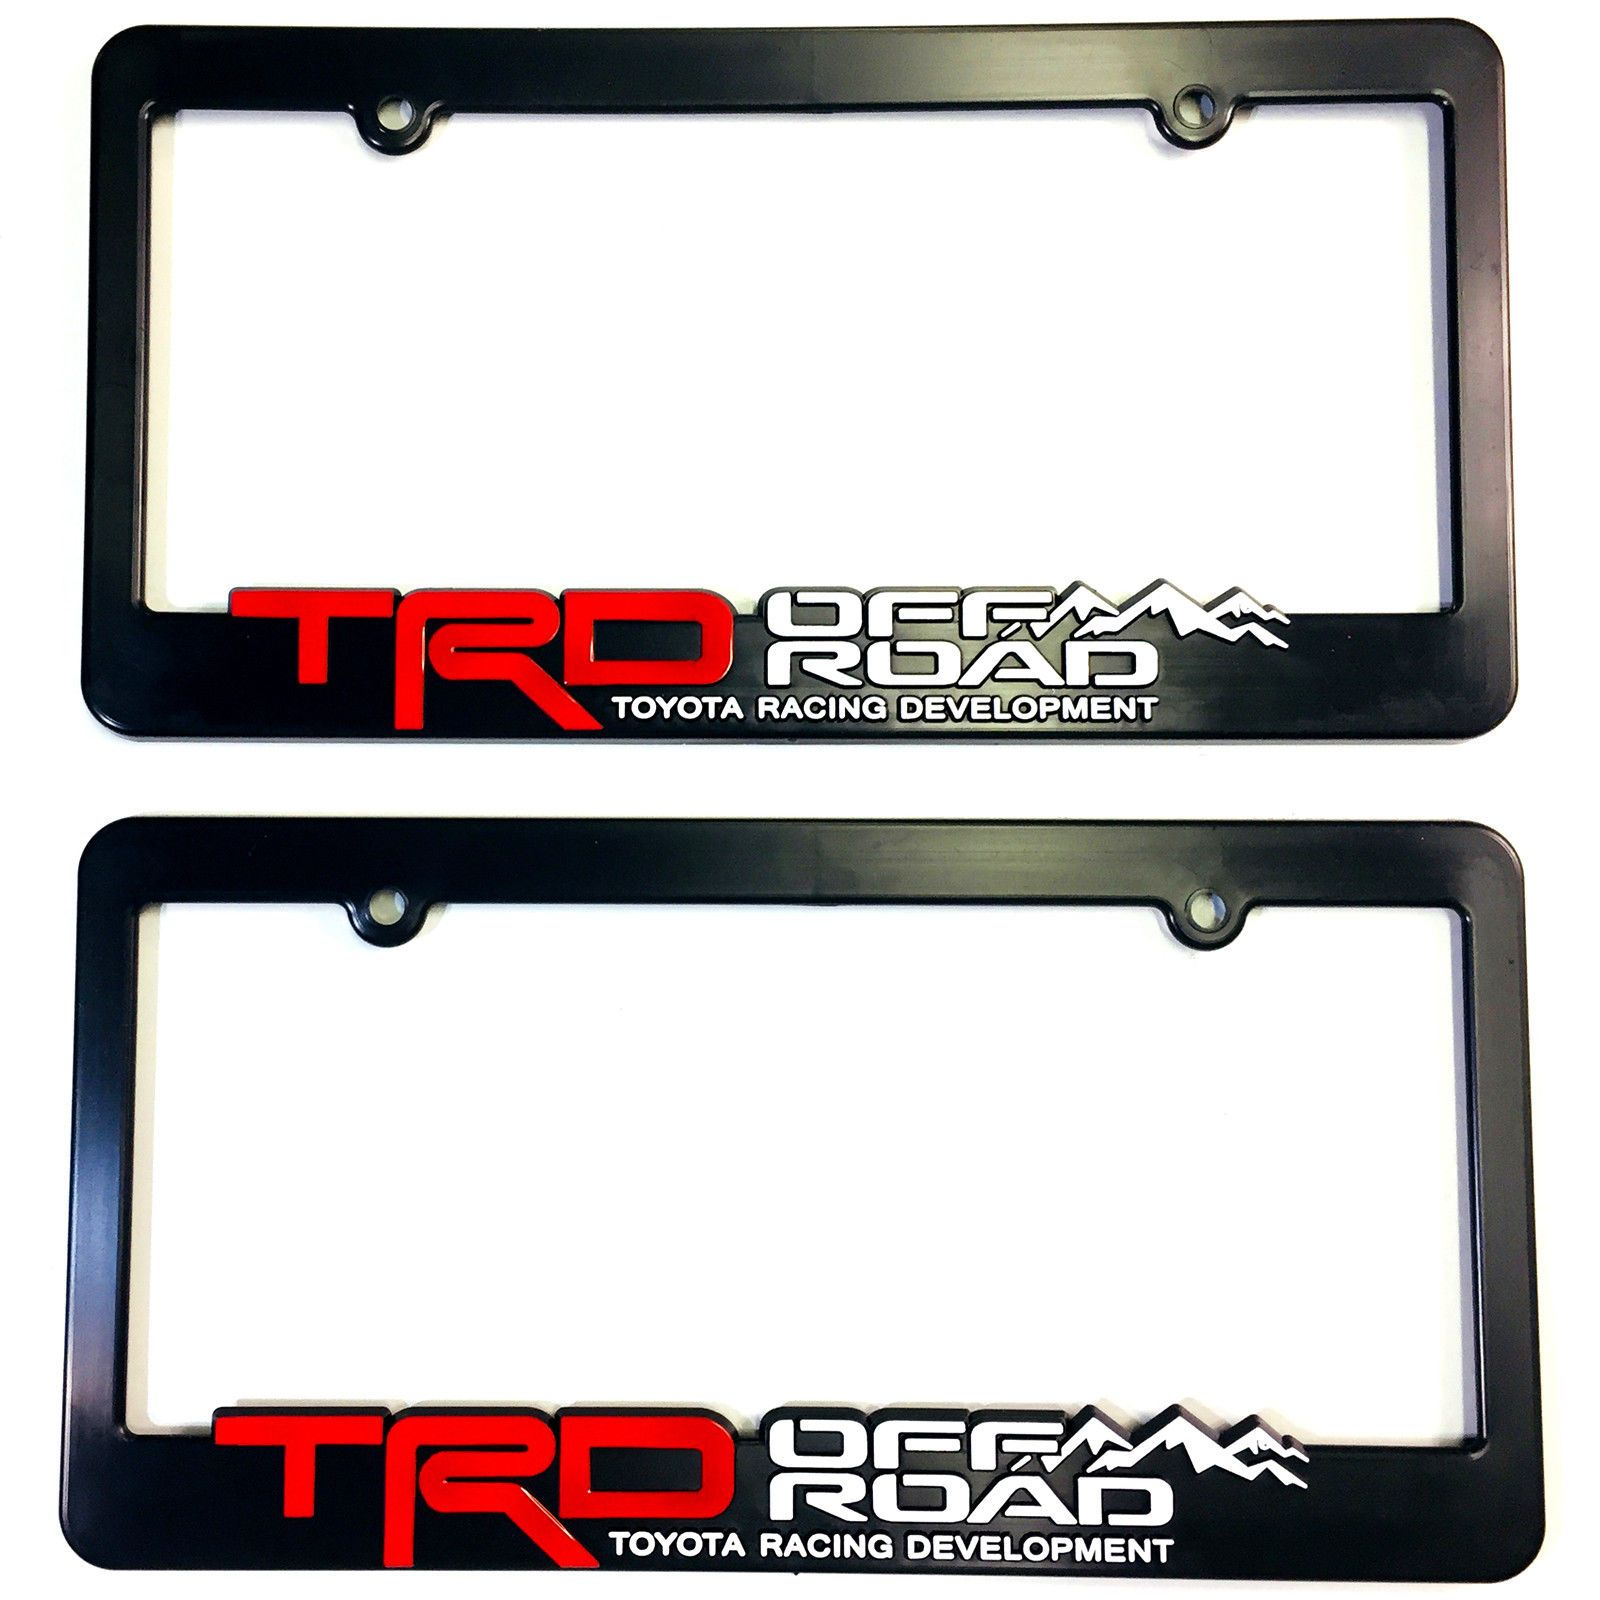 Awesome Great 2 TRD OFF ROAD Toyota Racing Development License Plate Frames  3D Letters, Trucks 2017 2018 | Cars | Pinterest | Toyota Racing  Development, ...